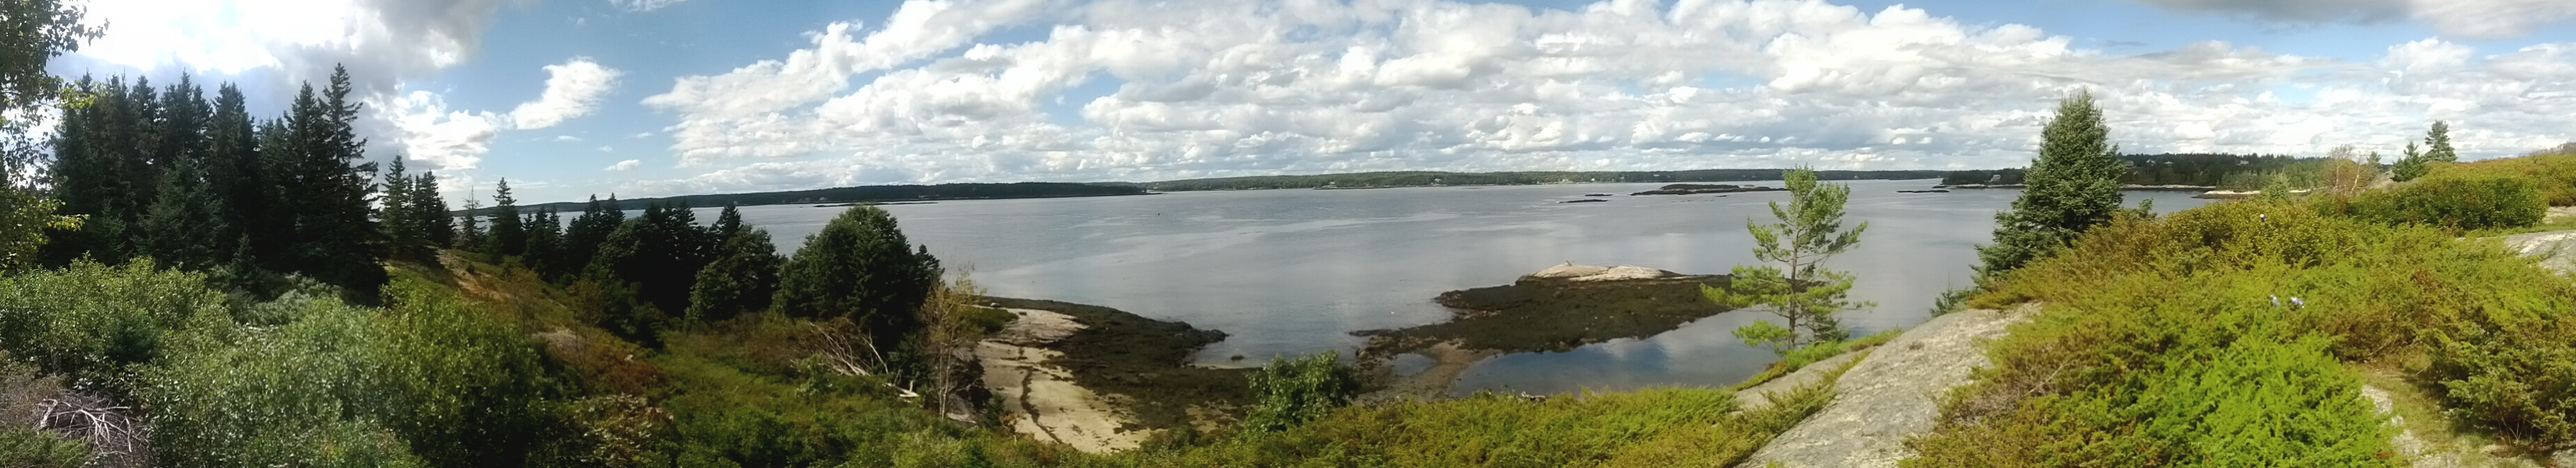 Sheepscot River from Boston Island